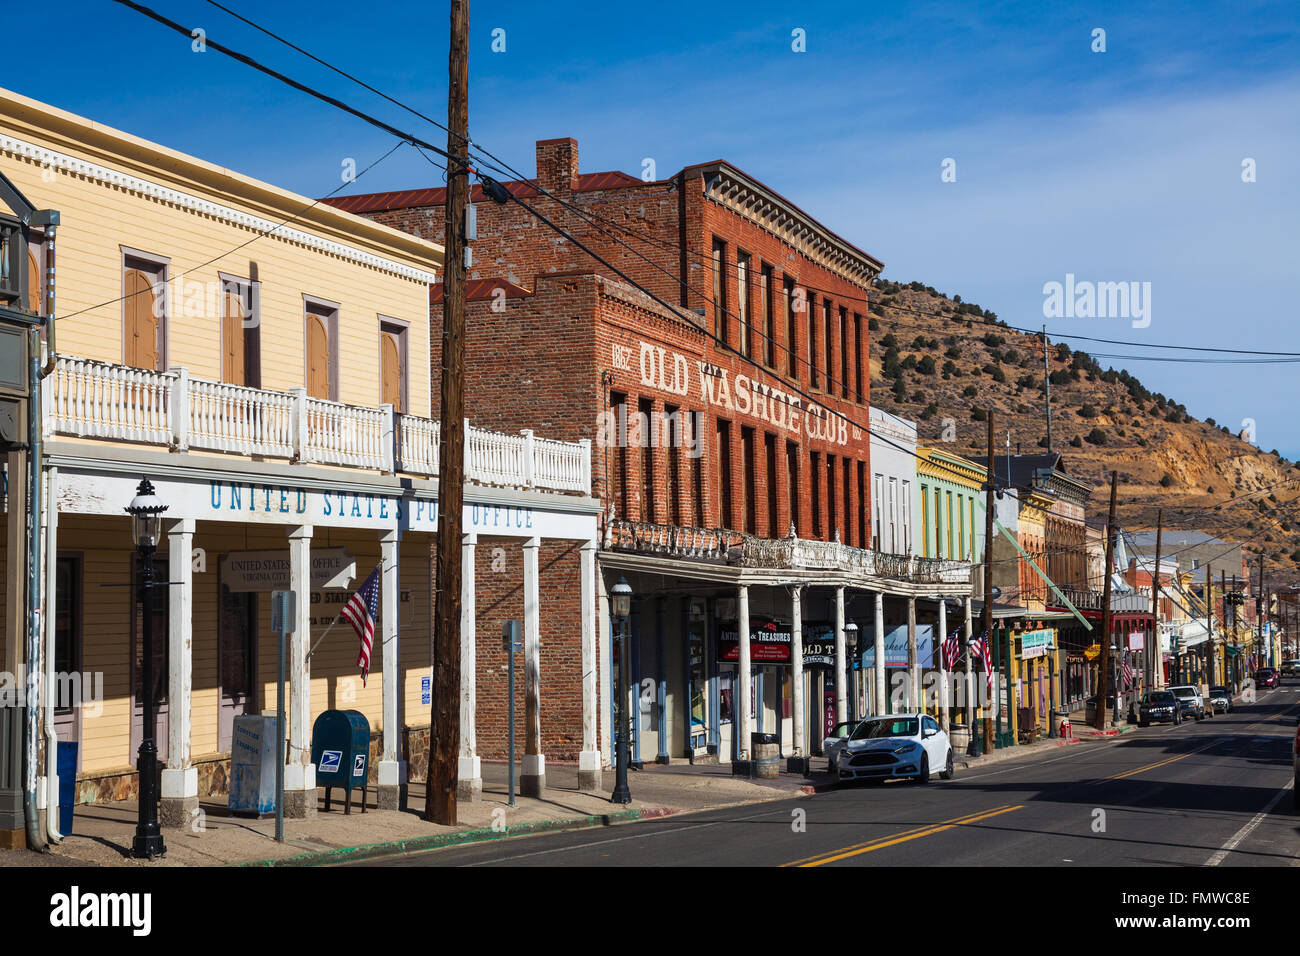 Street scene of Virginia City, Nevada, USA - Stock Image